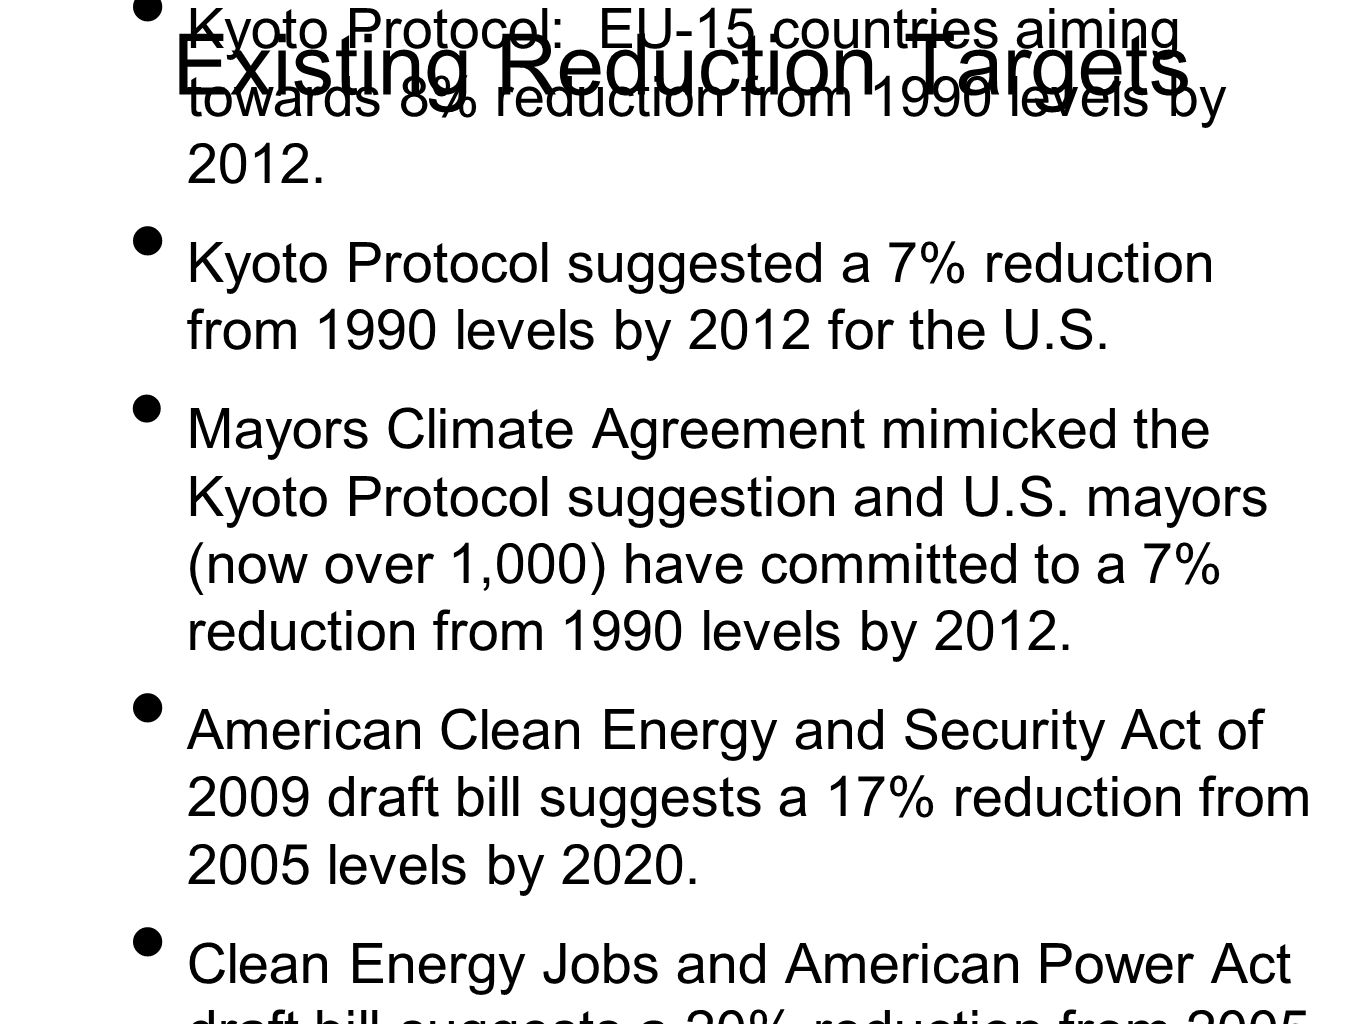 Existing Reduction Targets Kyoto Protocol: EU-15 countries aiming towards 8% reduction from 1990 levels by 2012.